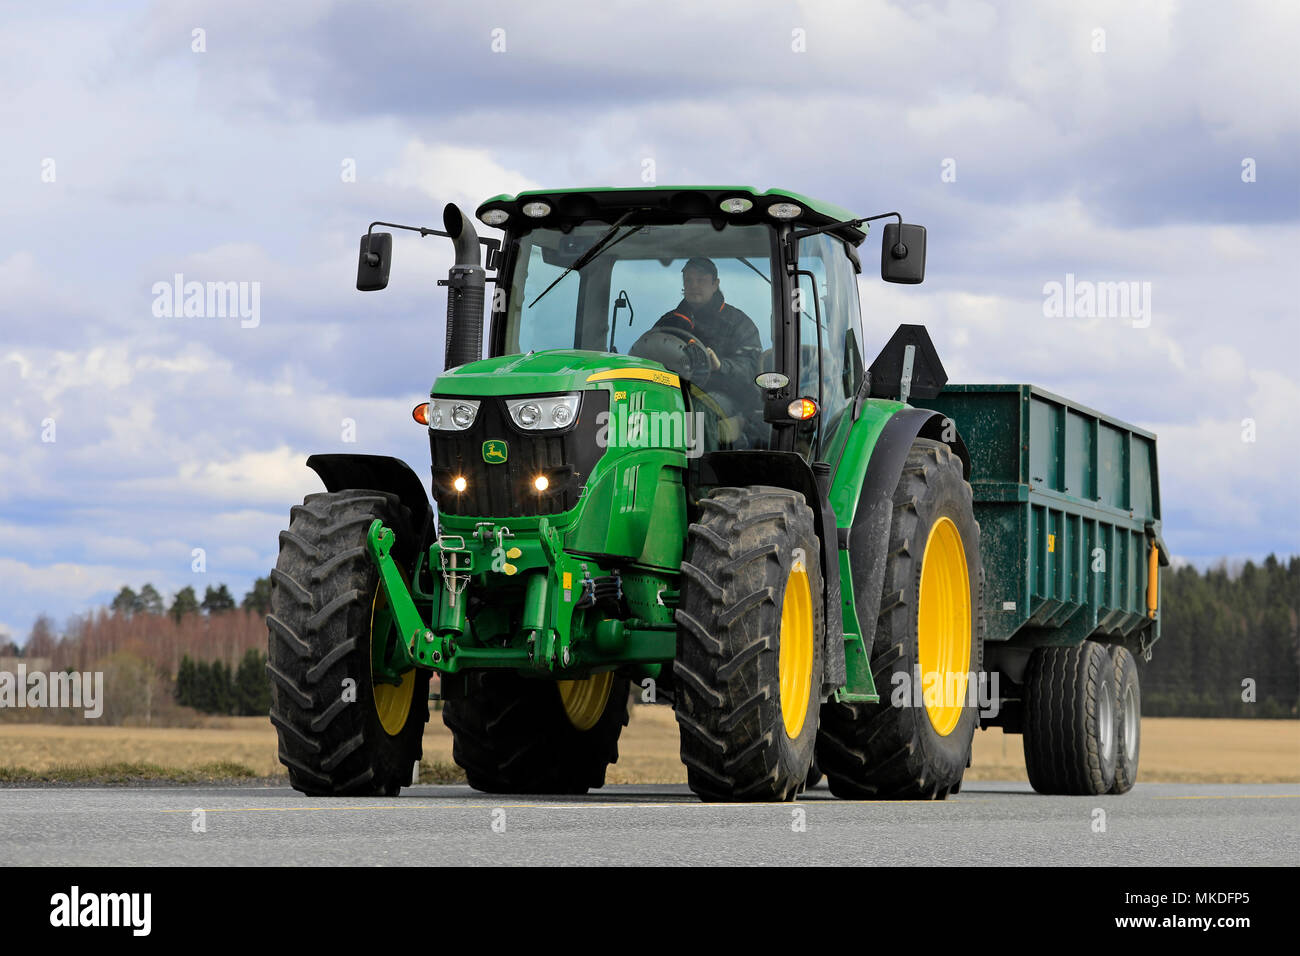 Farmer drives John Deere 6150R tractor and agricultural trailer on road. In 2018, late spring delays seeding. Jokioinen, Finland - April 30, 2018. Stock Photo